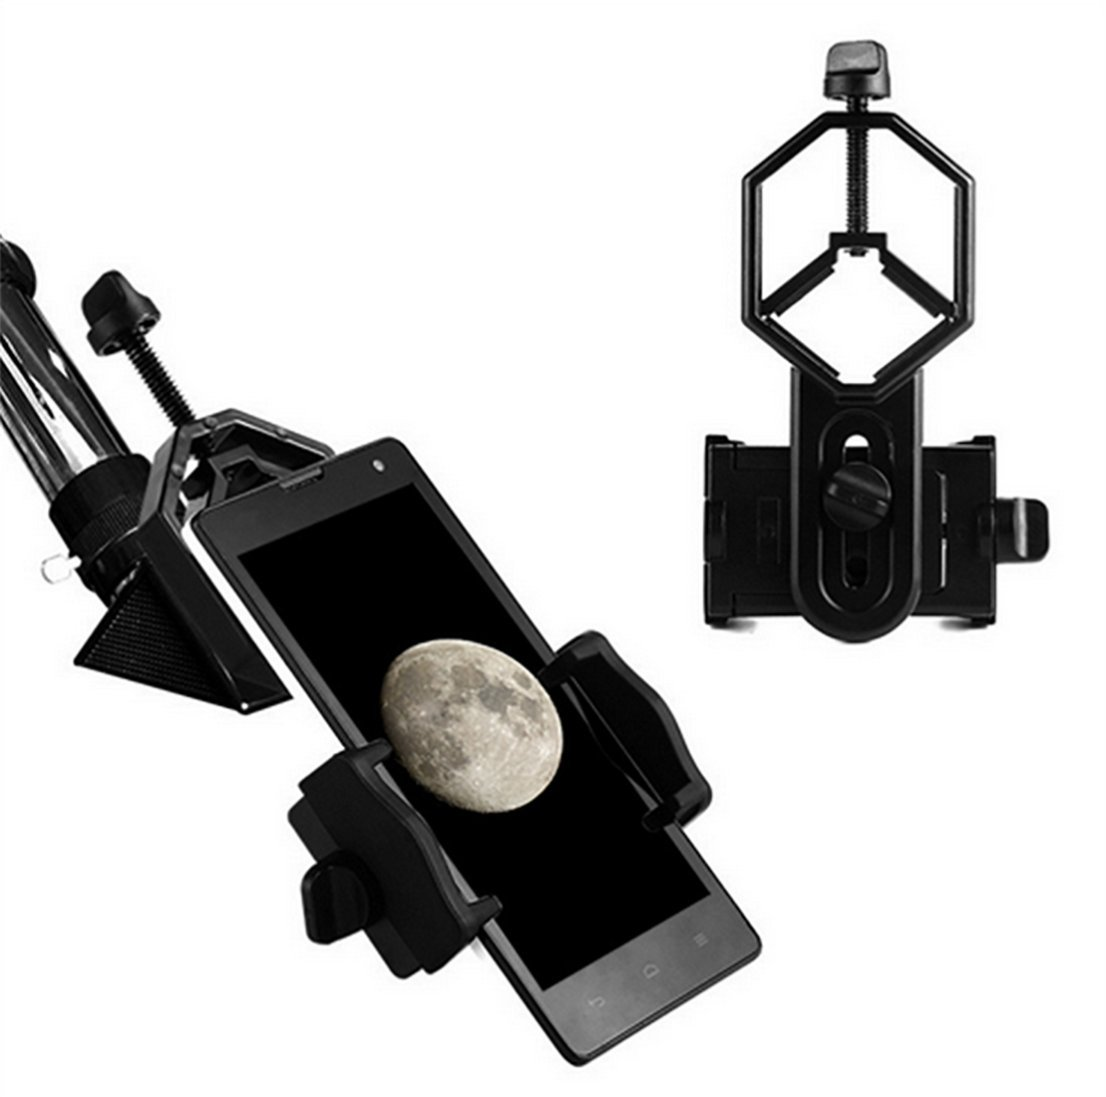 Universal Cell Phone Telescope Adapter Mount,Compatible with Binocular Monocular Spotting Scope Telescope and Microscope for iPhone Samsung Cellphone